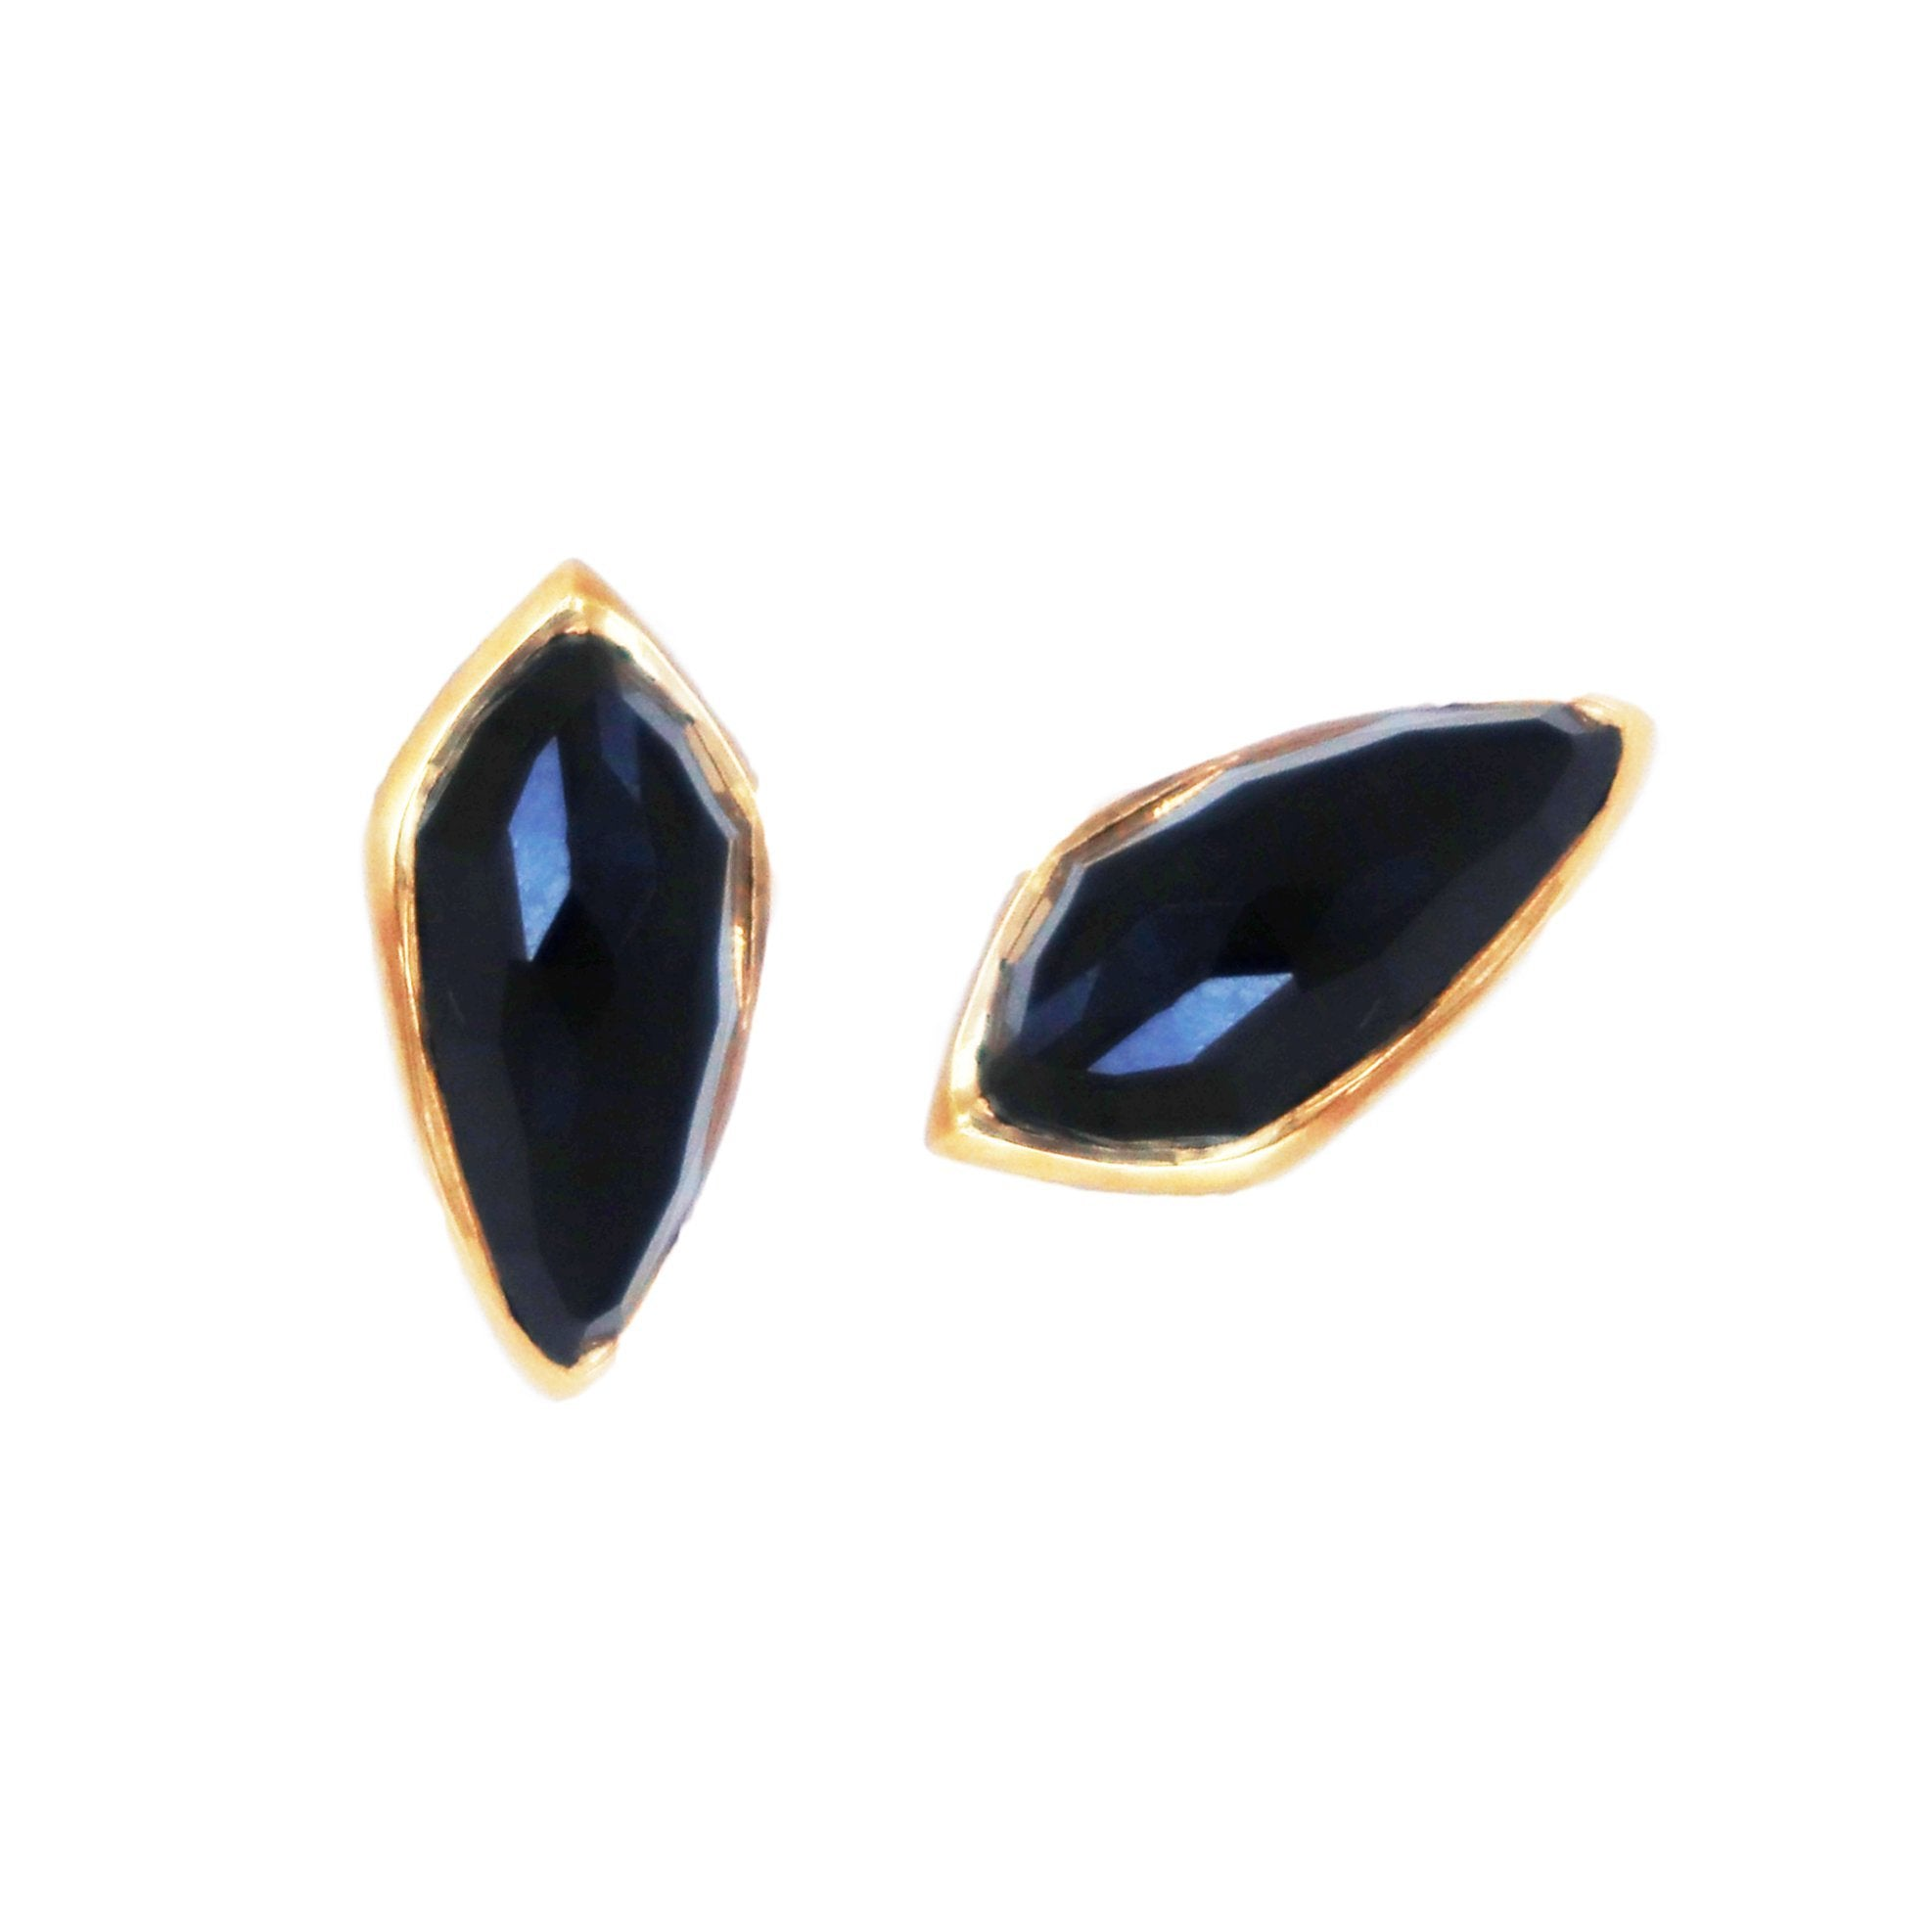 MIDI BRAVE STUD EARRINGS - BLACK ONYX & GOLD - SO PRETTY CARA COTTER